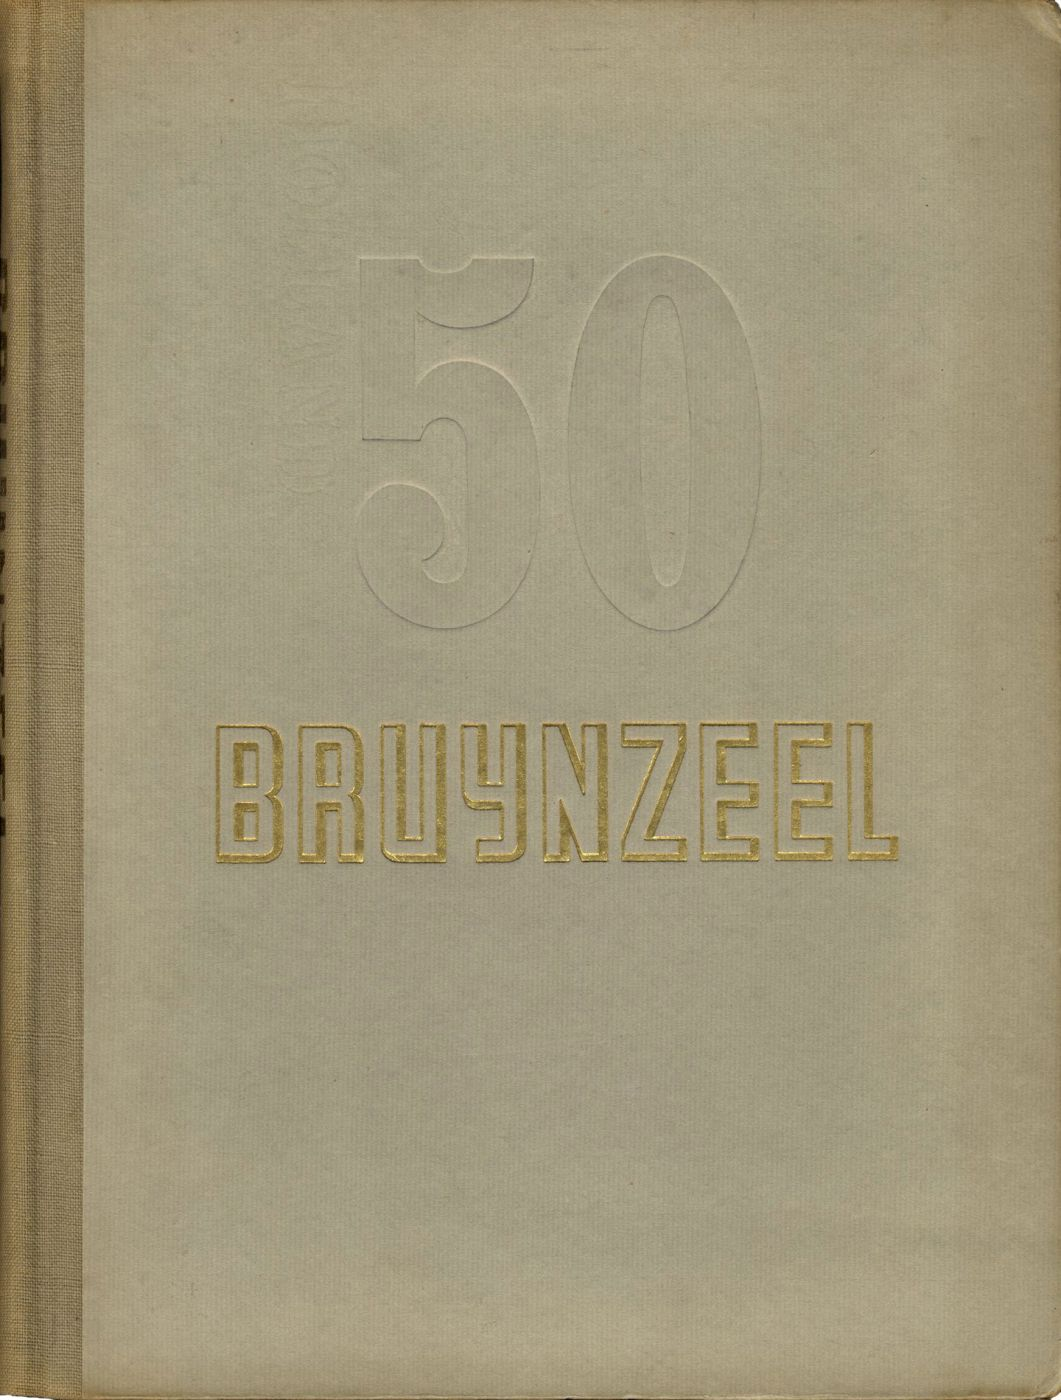 50 Jaar Bruynzeel (50 Years of Bruynzeel) 1897-1947 (Thijsen Corporate Photography)